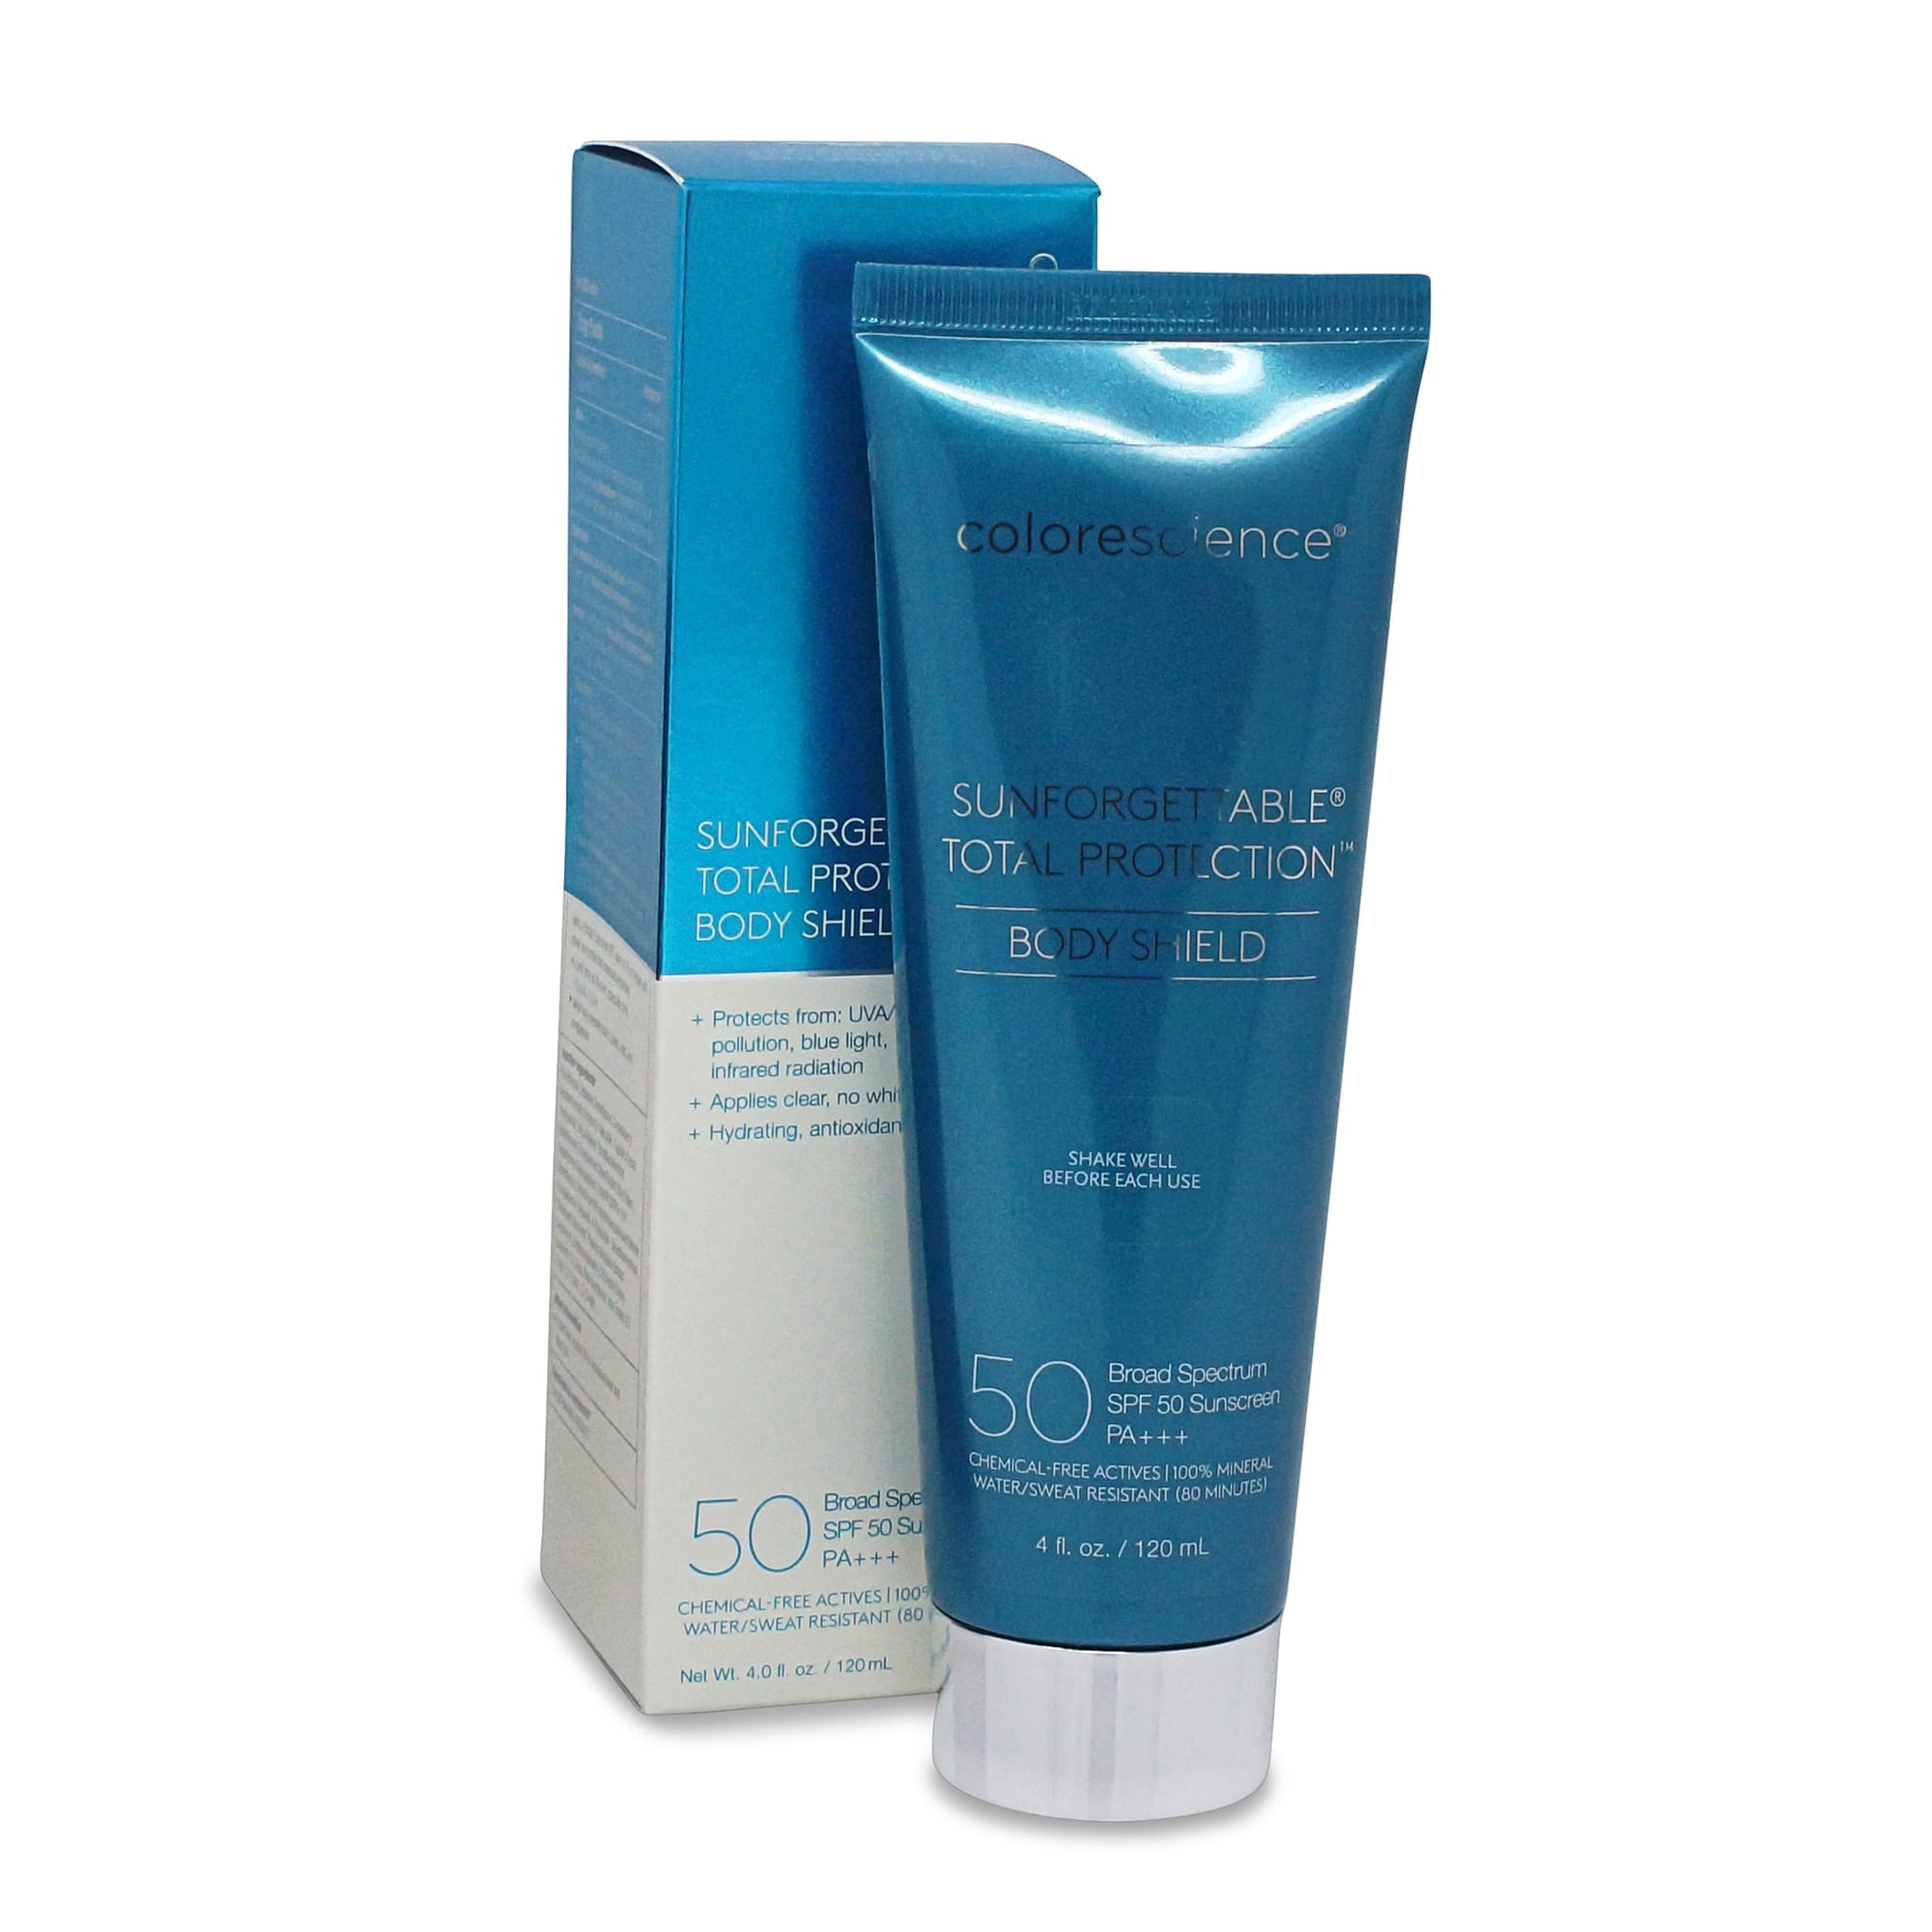 Soothing sunburn starts with prevention. Use Colorescience Sunforgettable Total Protection SPF 50 Bodyshield